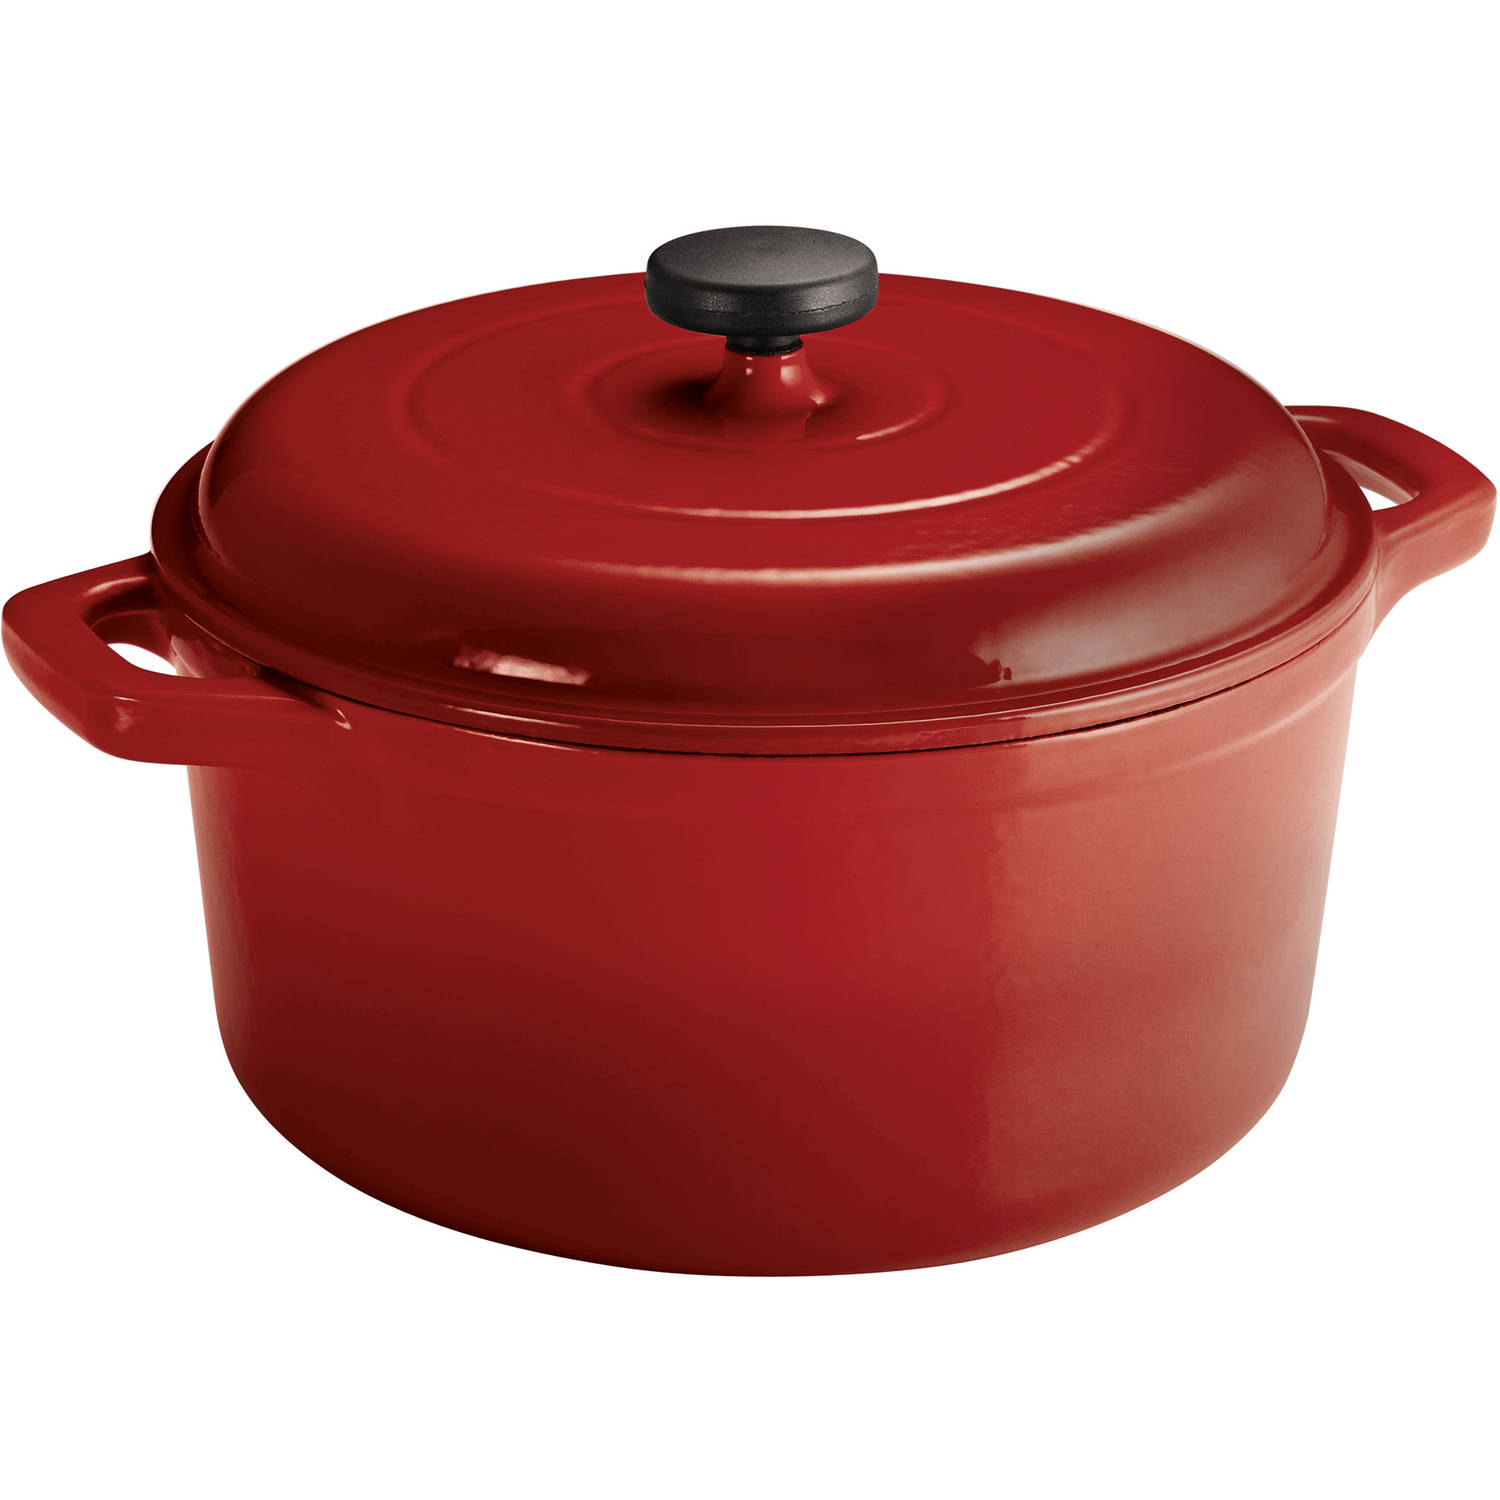 Tramontina Enameled Cast Iron 6.5 Quart Round Dutch Oven